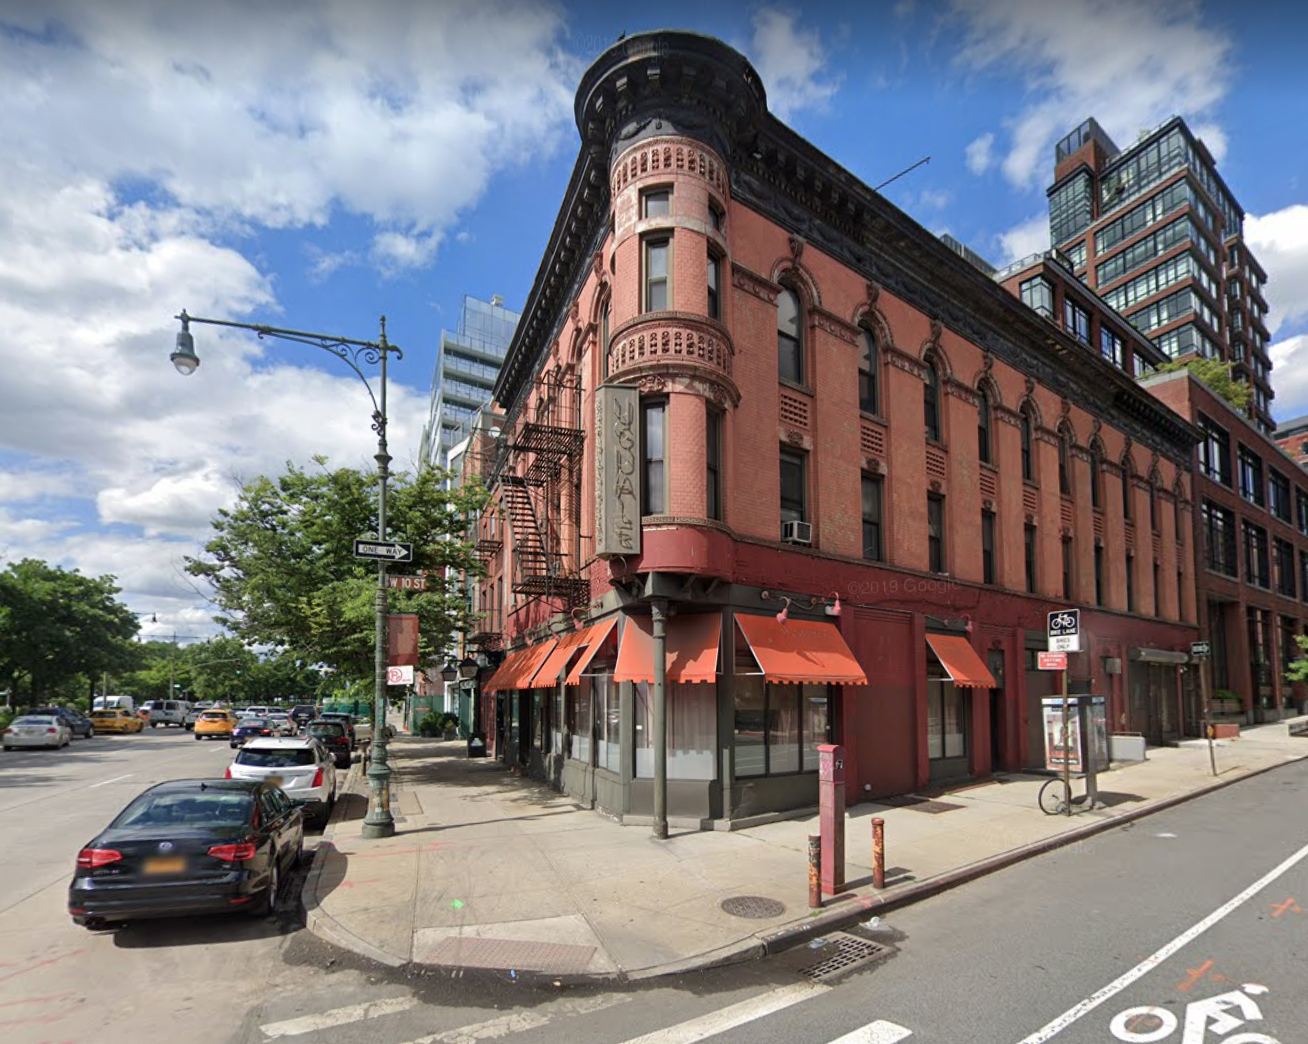 396 West Street from Google Maps circa 2019, 3 story corner building with masonry facade